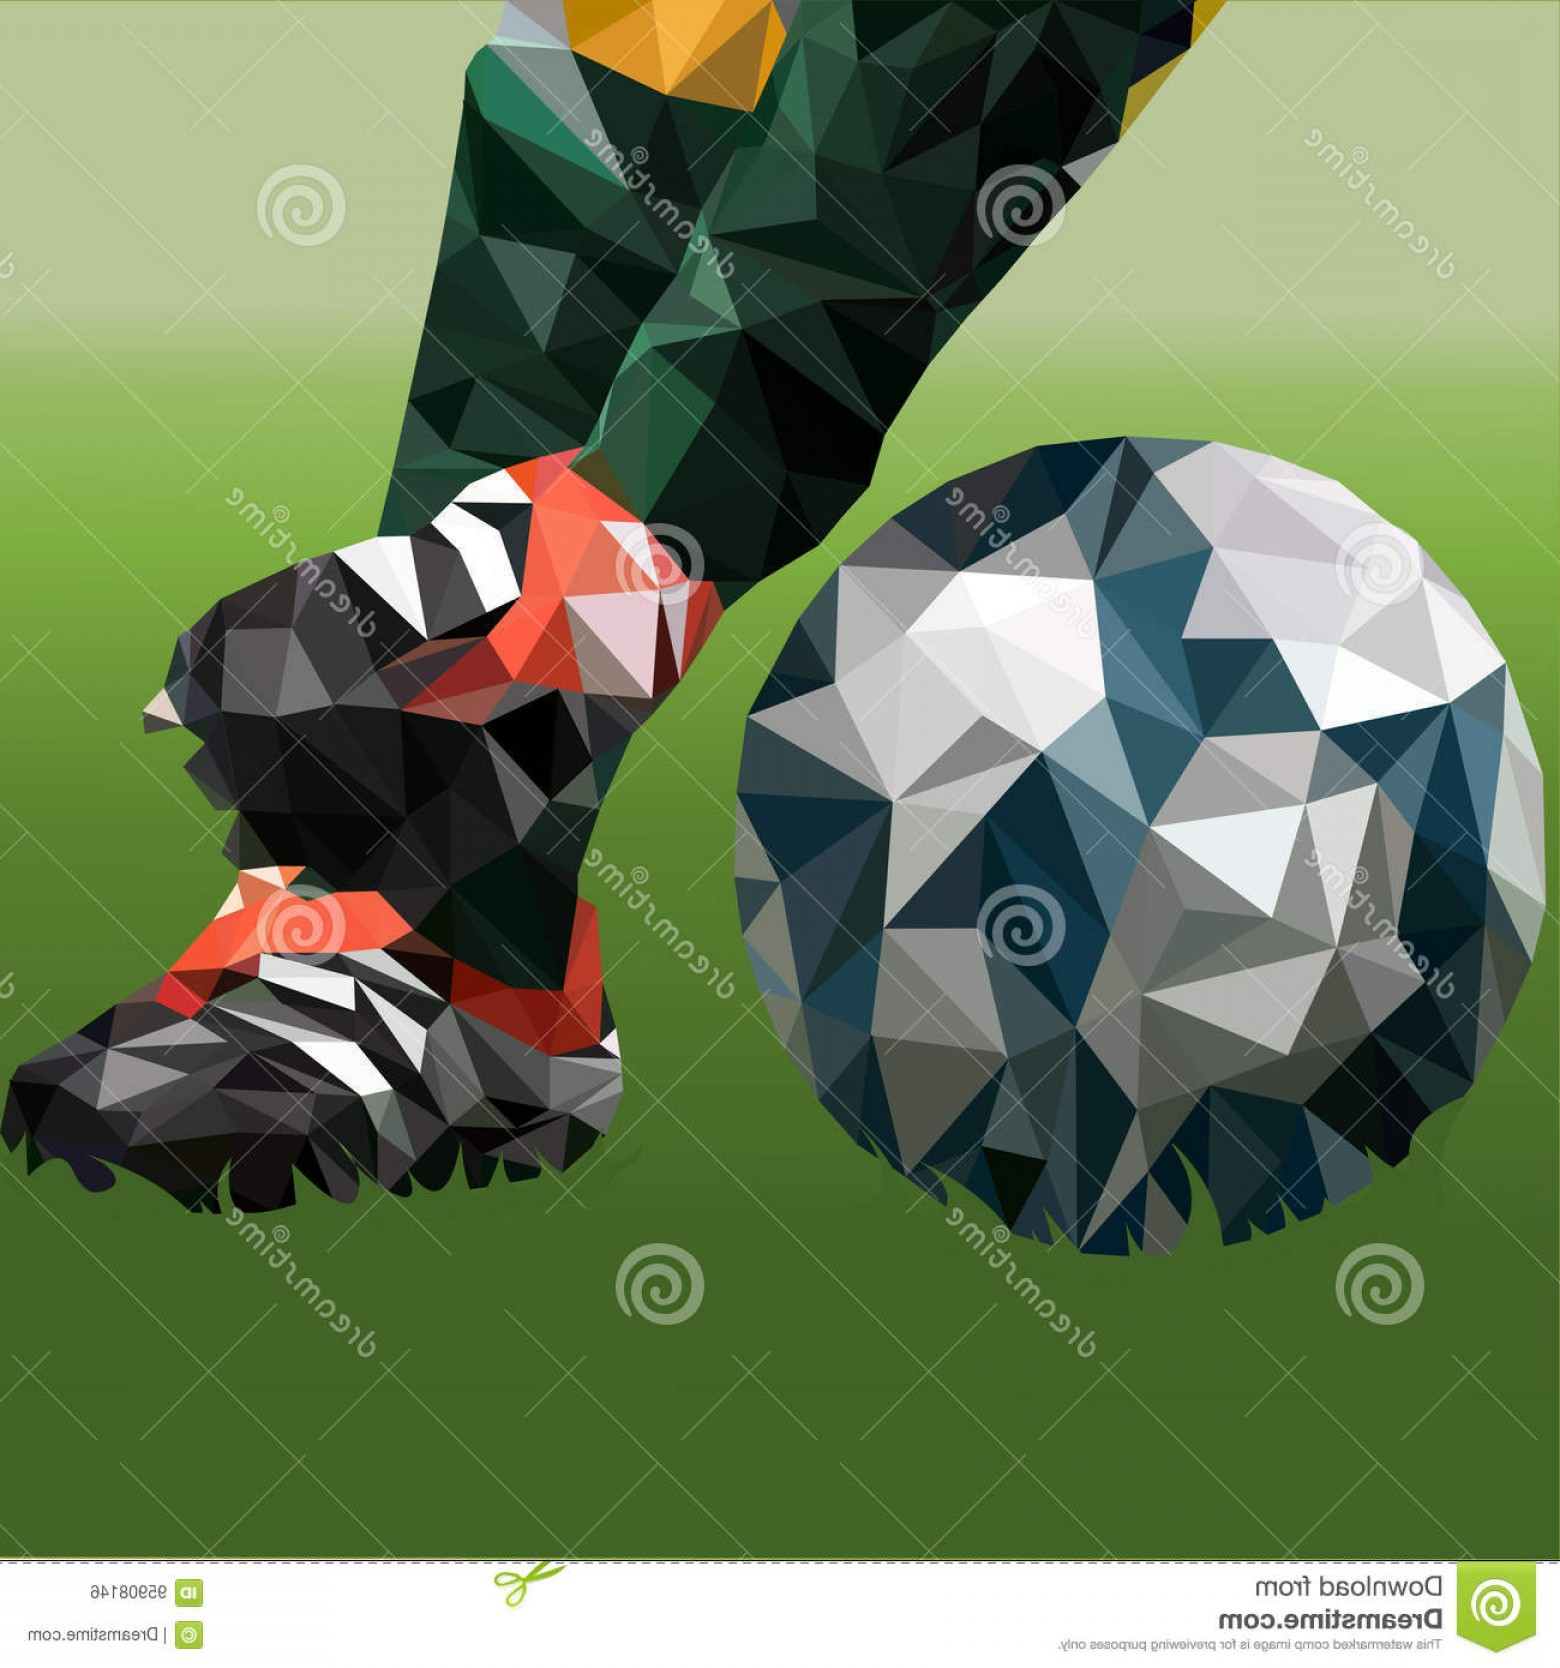 Abstract Football Vector Outline: Stock Illustration Abstract Illustration Theme Football Low Poly Technique Eps Image